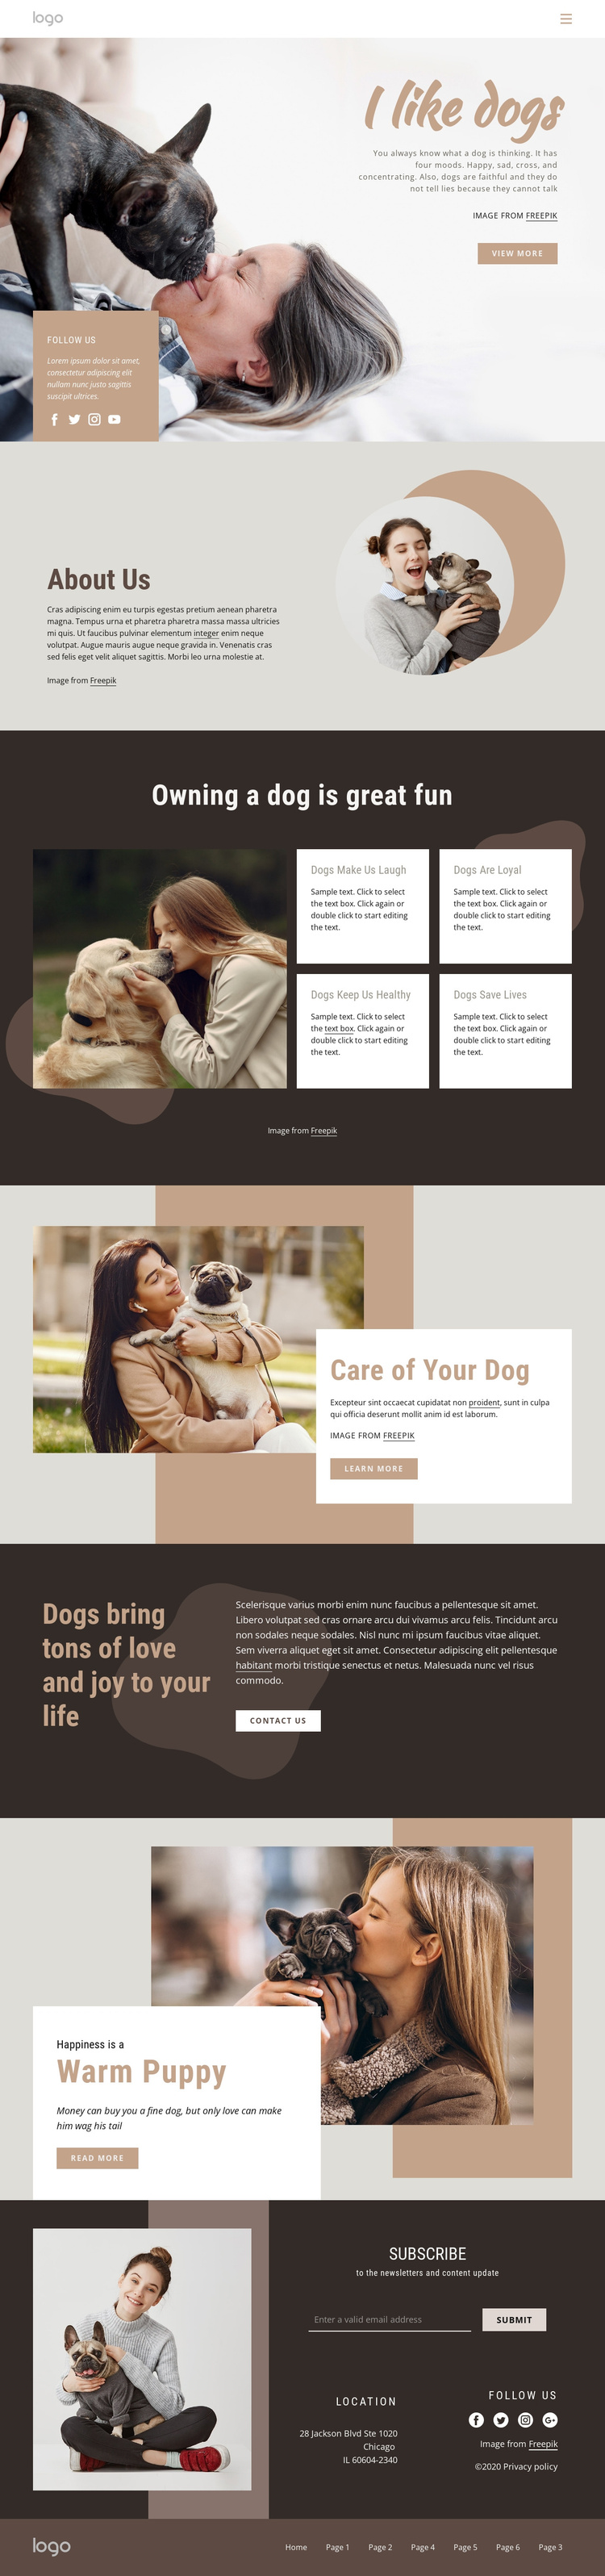 All about dogs Joomla Template